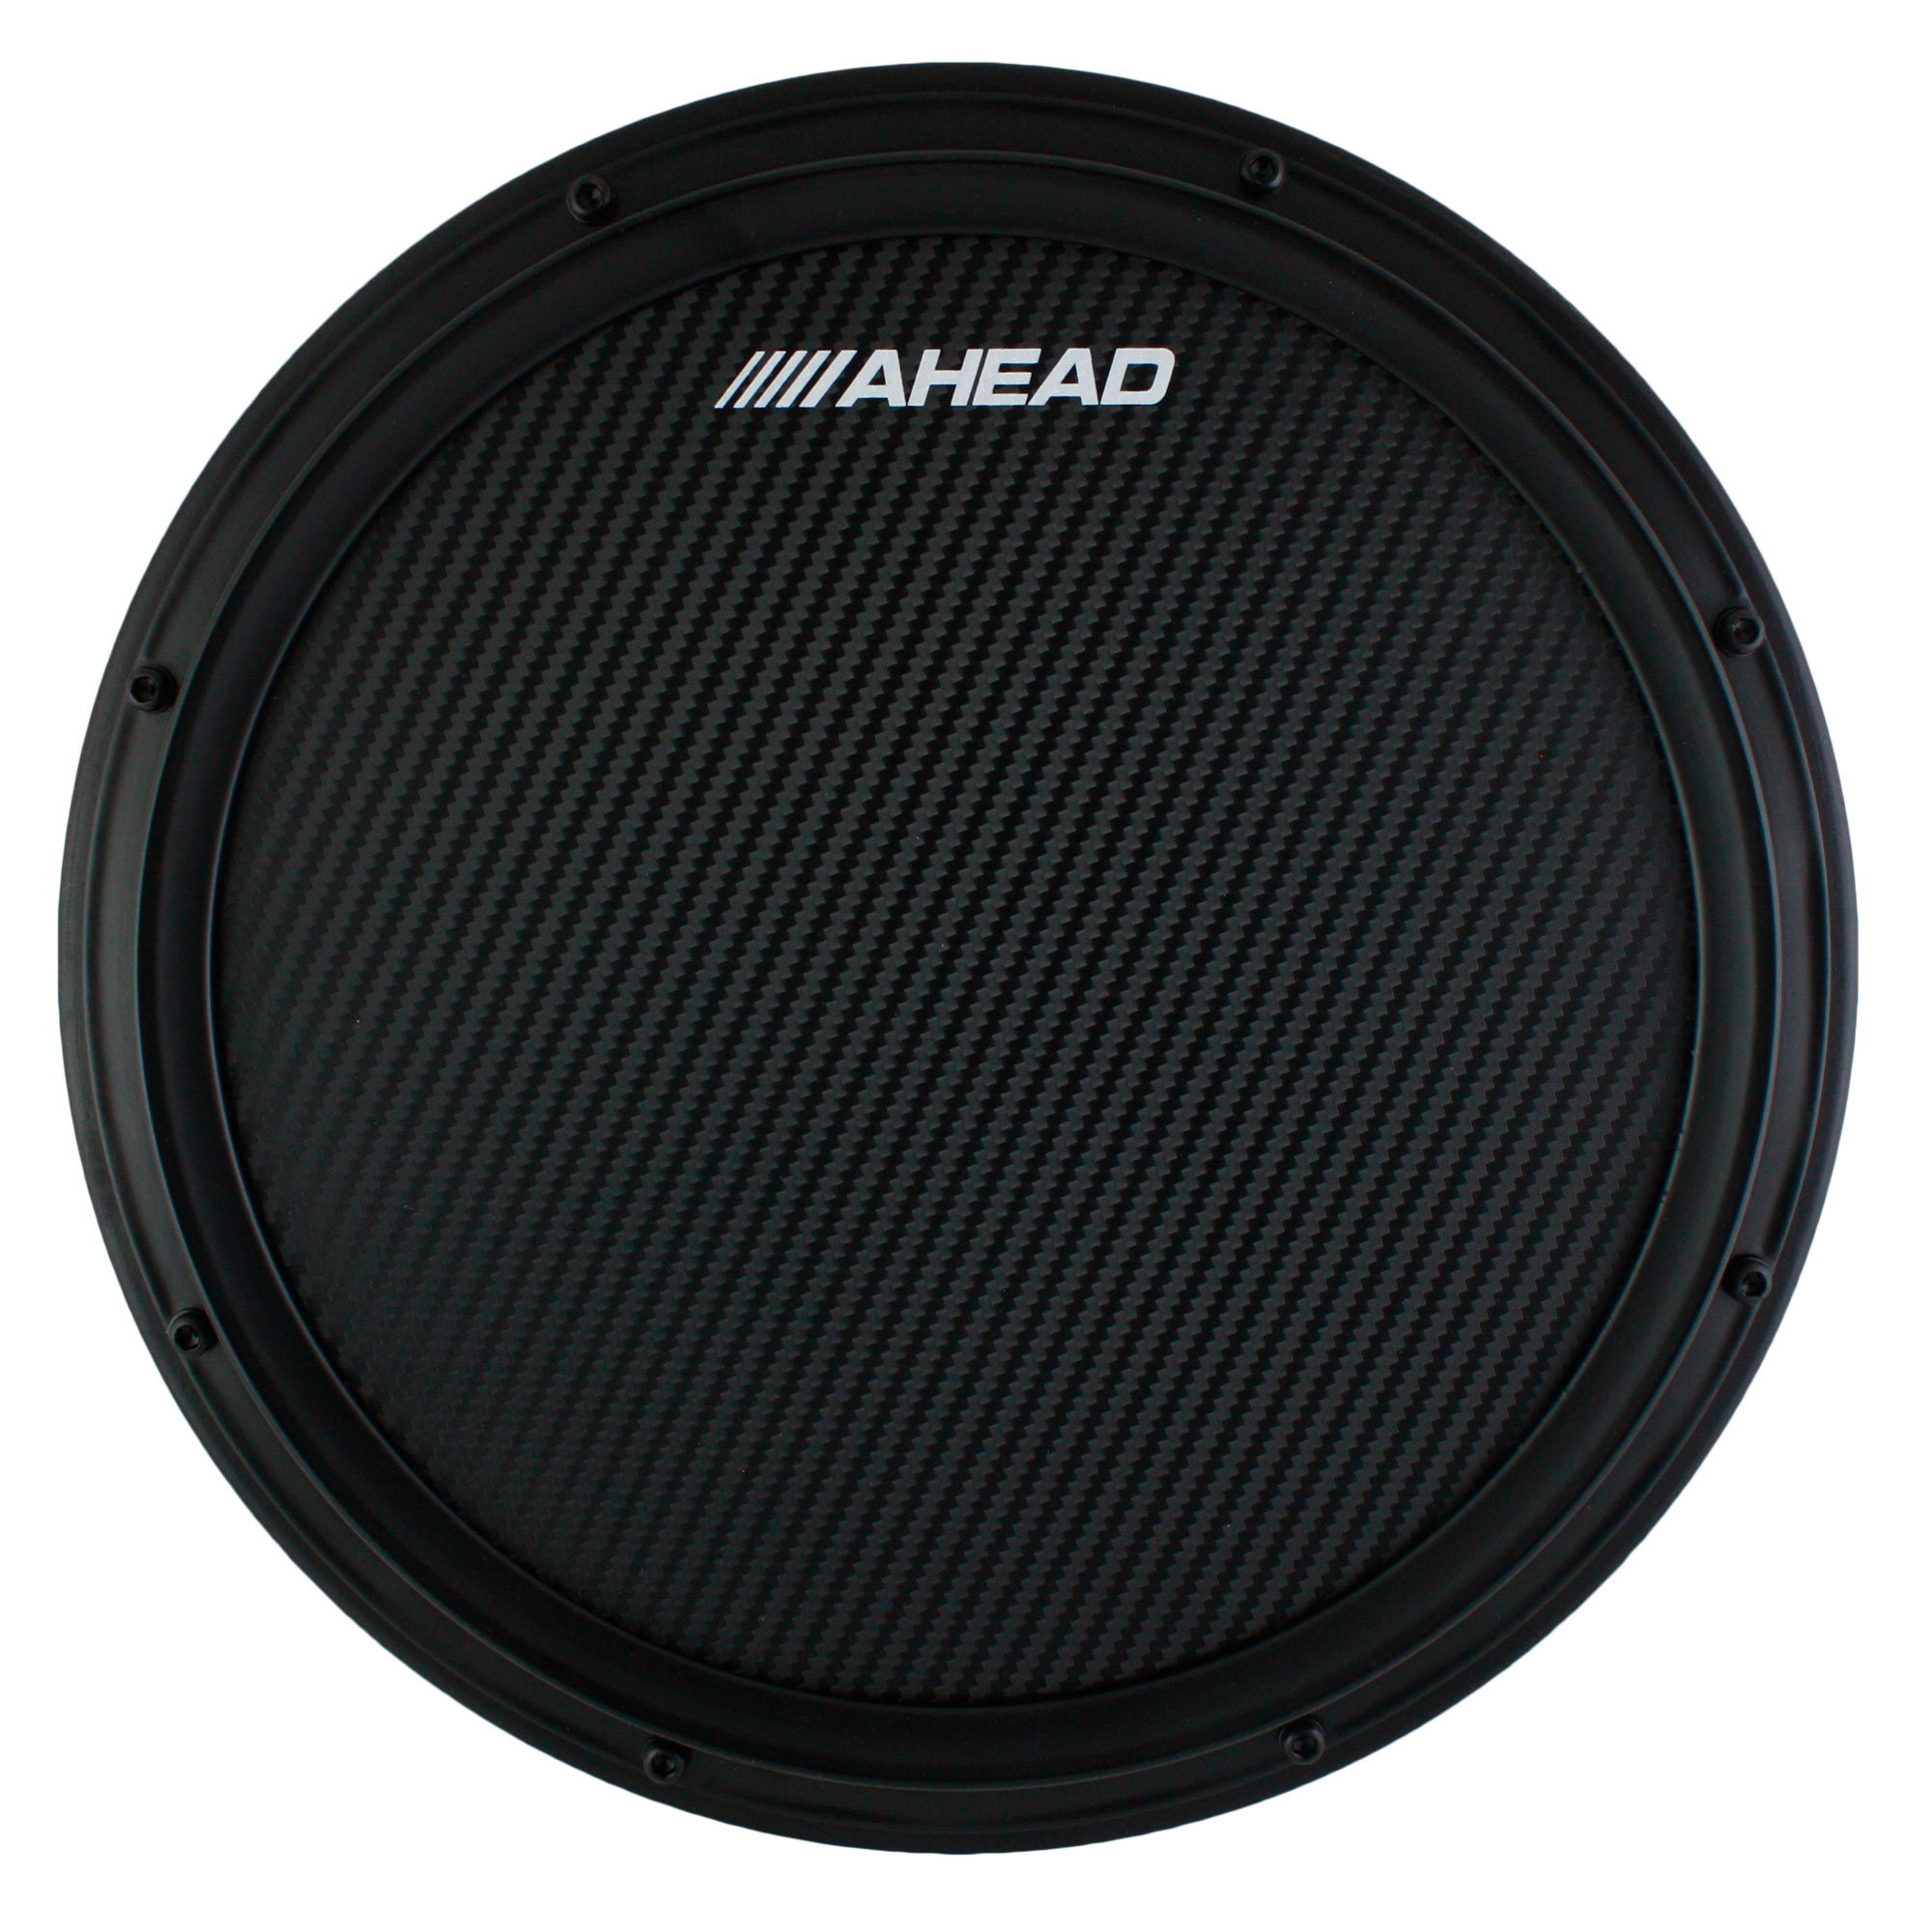 """Ahead 14"""" Black S-Hoop Marching Practice Pad with Snare Sound"""